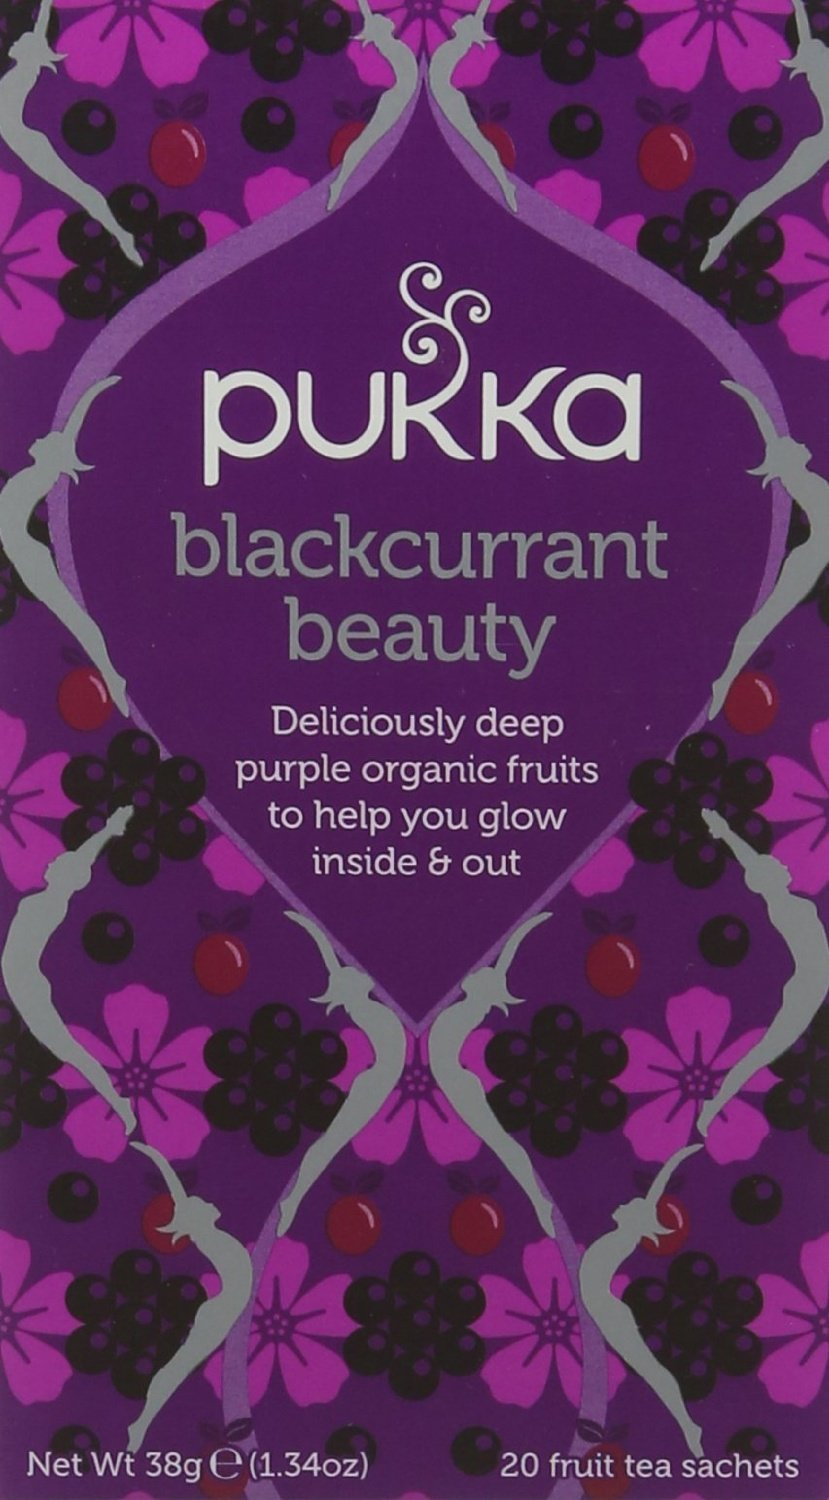 Pukka Womens range tea bundle (soil association) (infusions) (4 packs of 20 bags) (80 bags) (a floral, fruity, vegetal tea with aromas of beetroot, blackcurrant, fennel, hibiscus, liquorice, rosehip) (brews in up to 15 min)